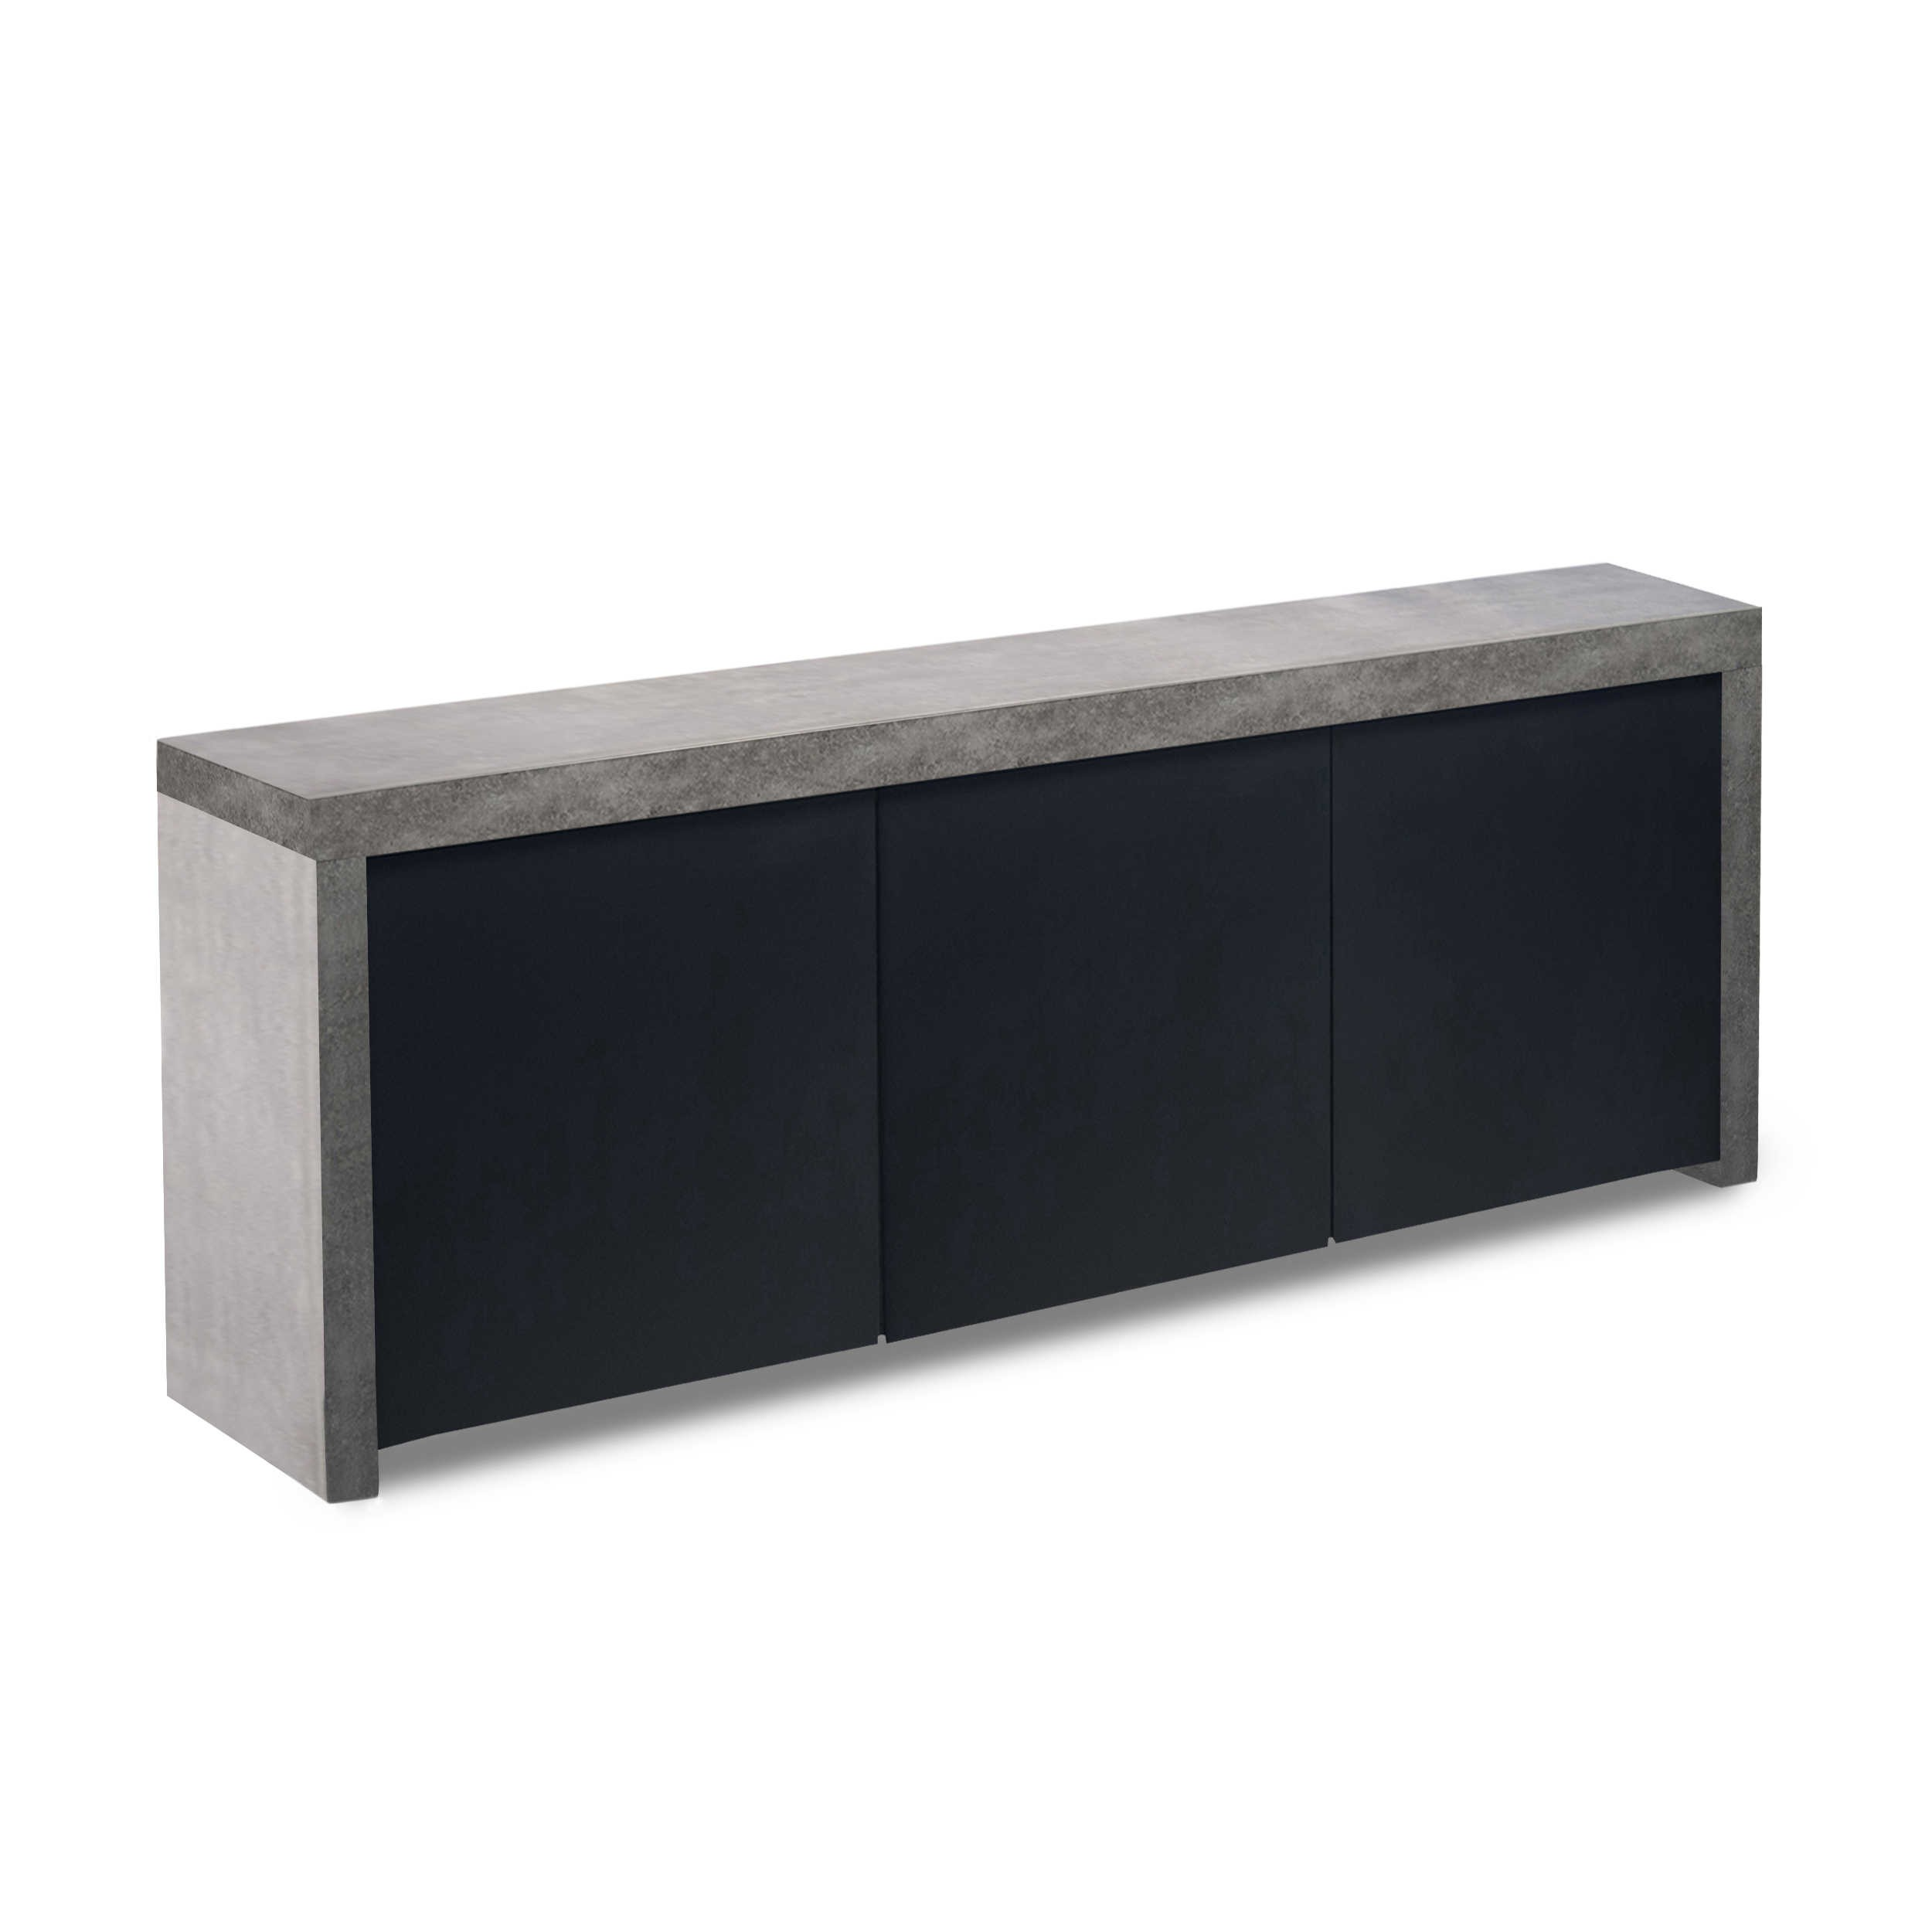 temahome sideboard pombal grau lack hochglanz online. Black Bedroom Furniture Sets. Home Design Ideas